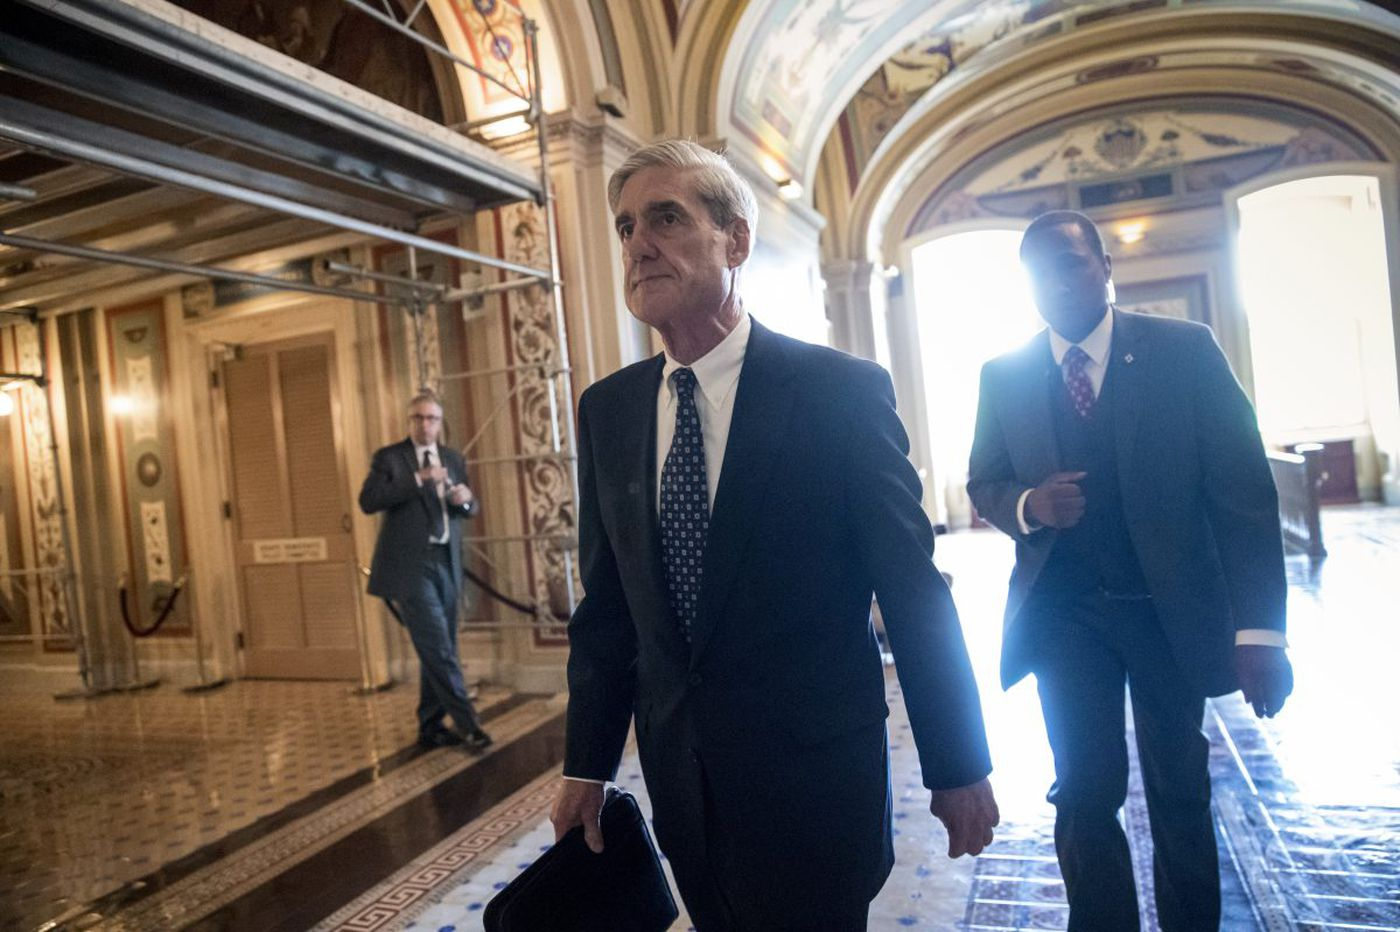 Mueller's swift moves signal mounting legal peril for the White House